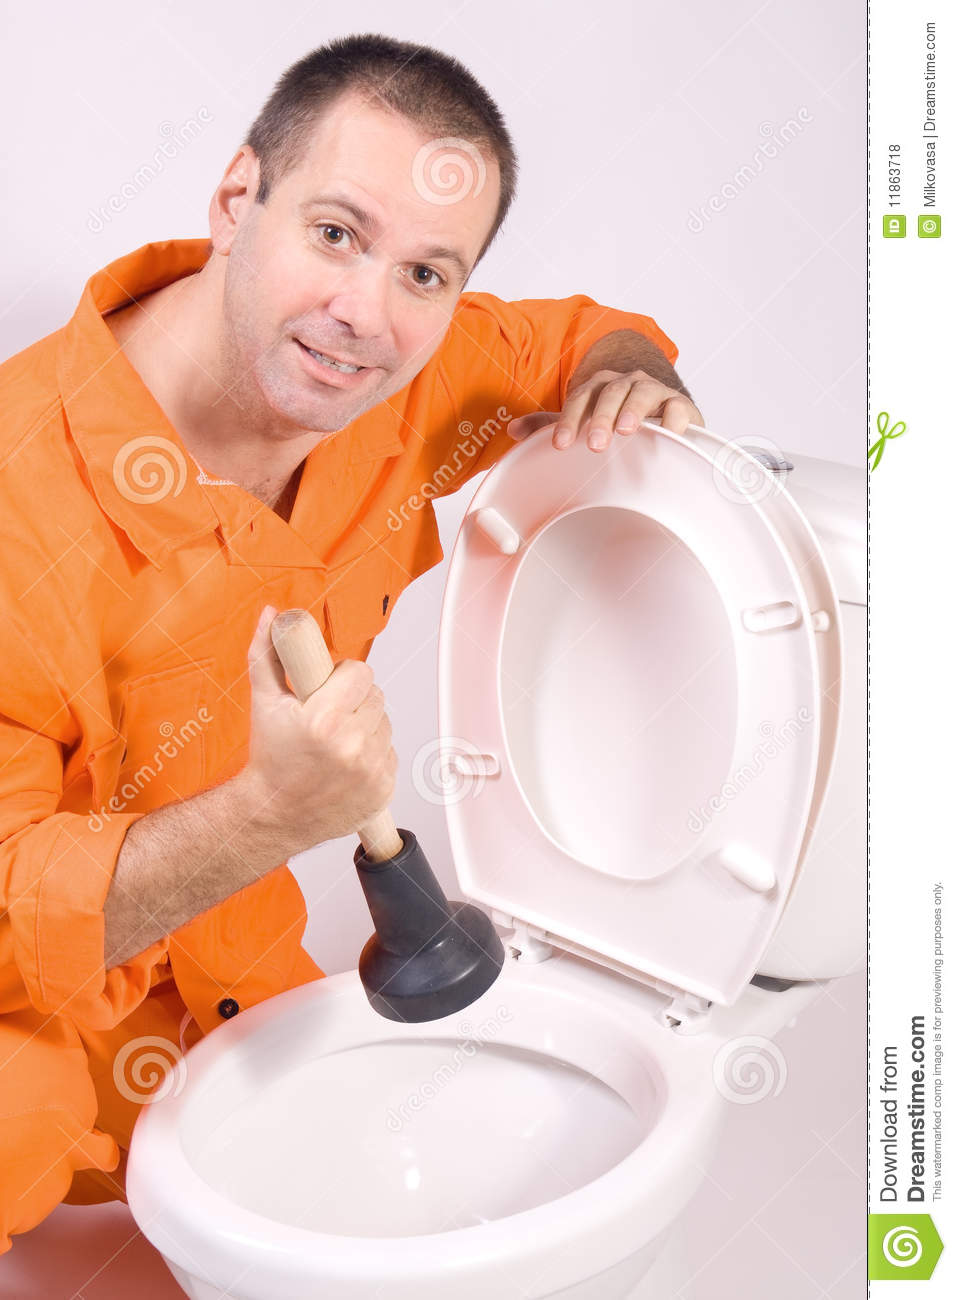 Plumber with toilet bowl stock photo. Image of ceramic - 11863718